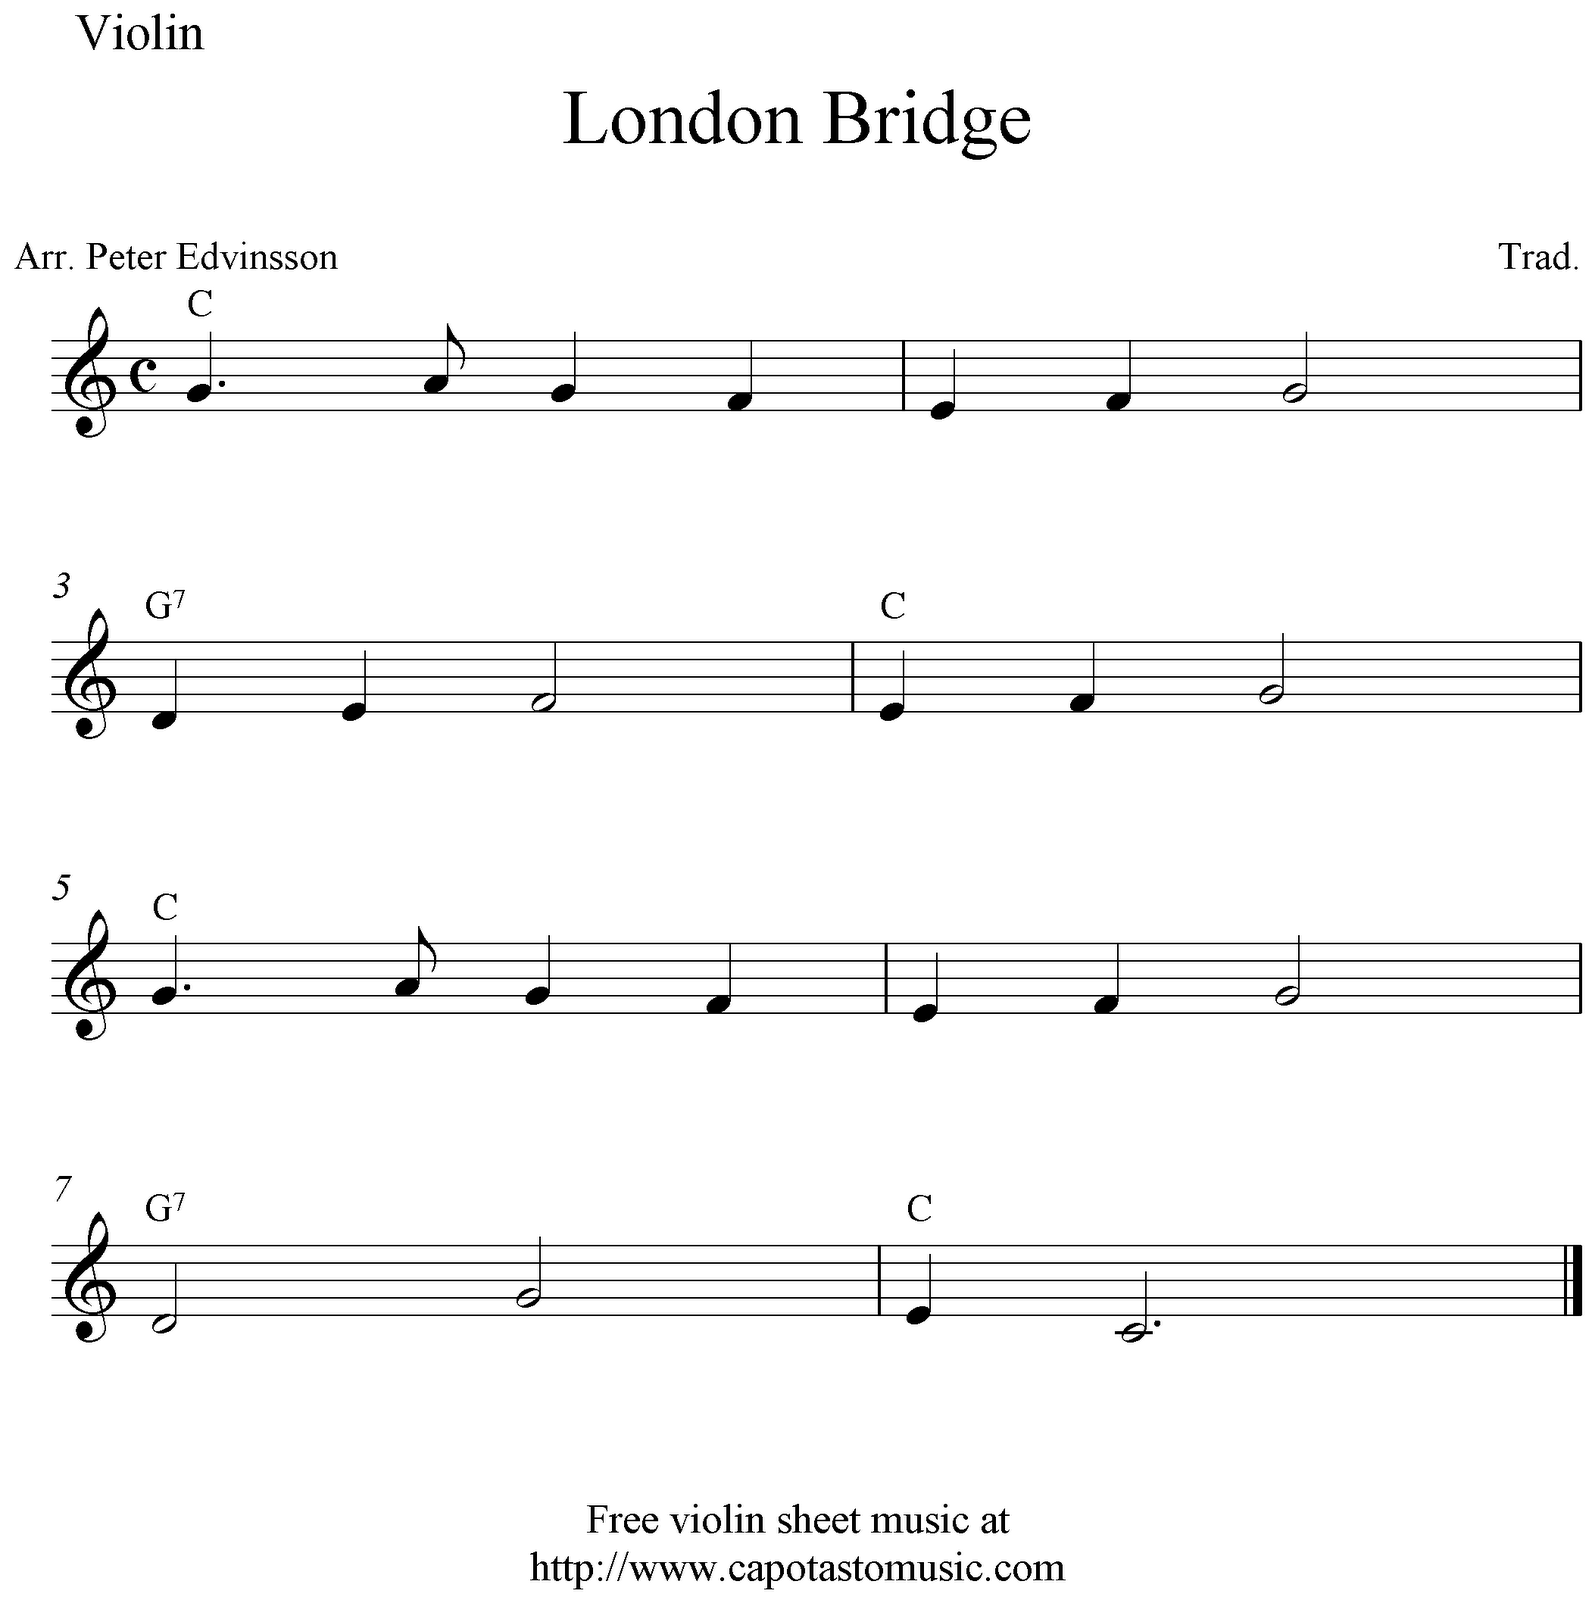 London Bridge, Easy Free Violin Sheet Music Notes